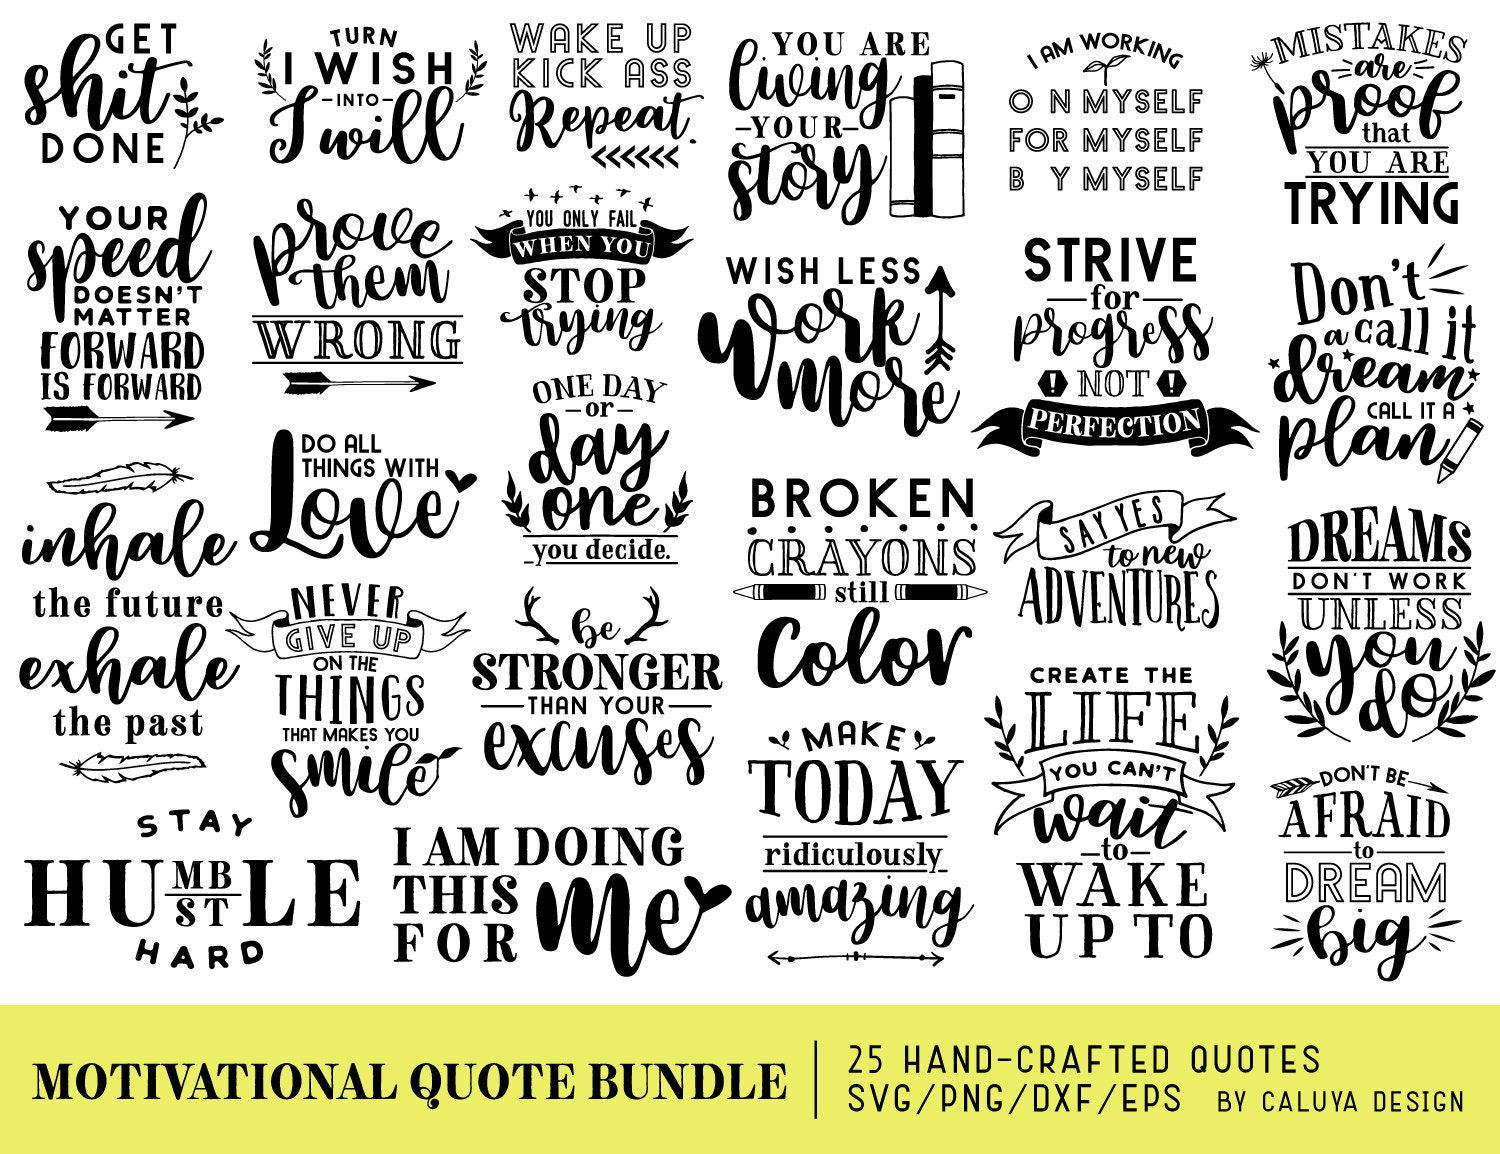 Your Mom Goes To College Quote: Motivational Quotes SVG Cut File Bundle Deal Cut File For